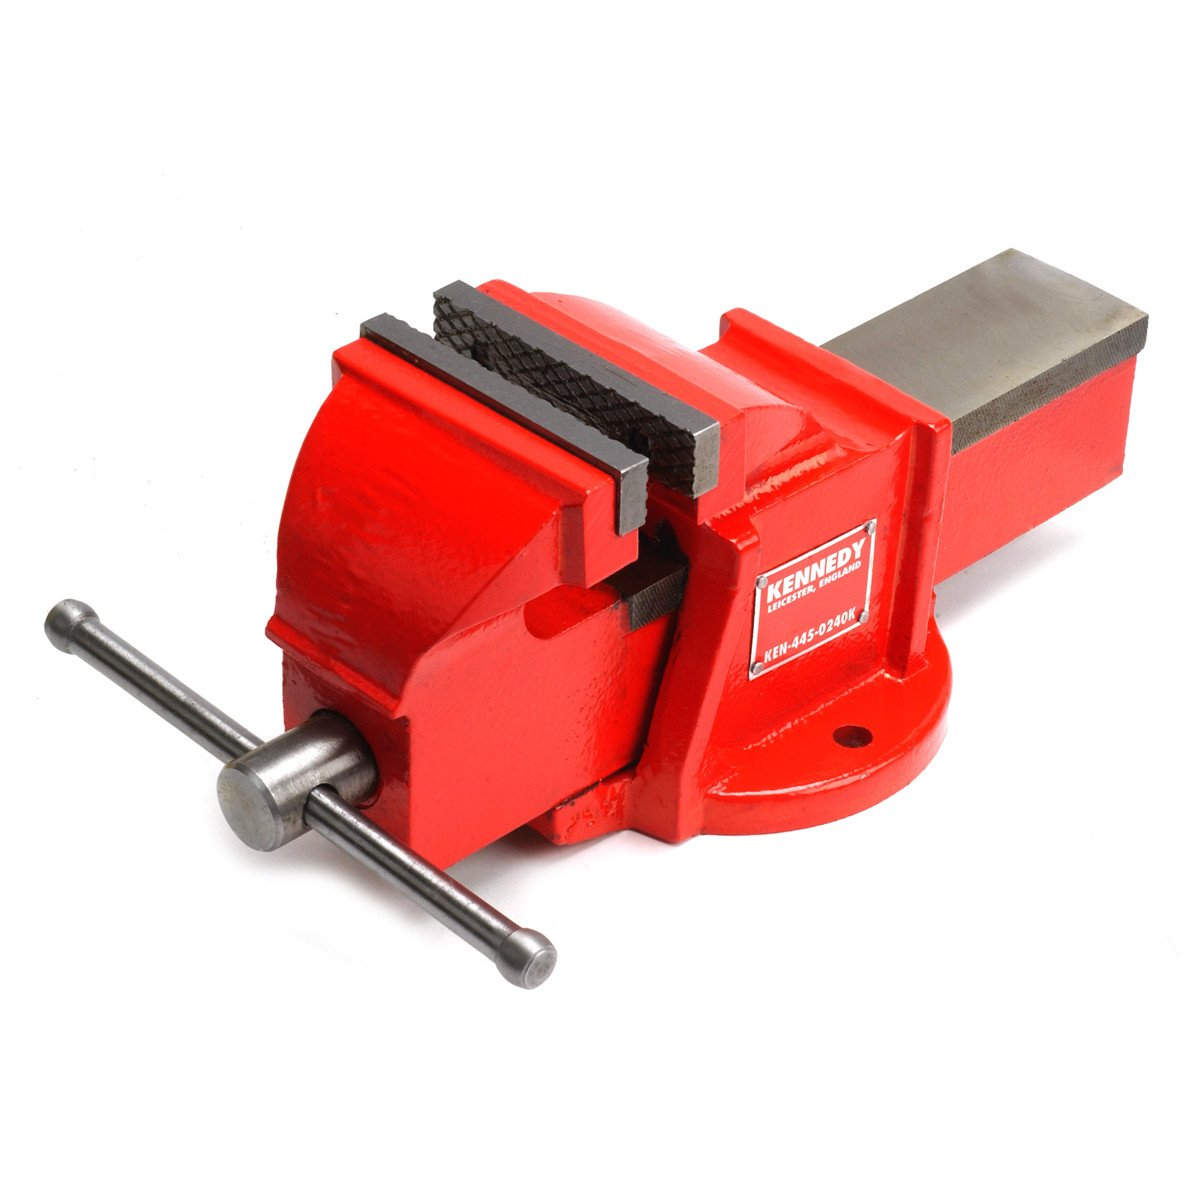 Durston Large Bench Vise B06XXY3DNB